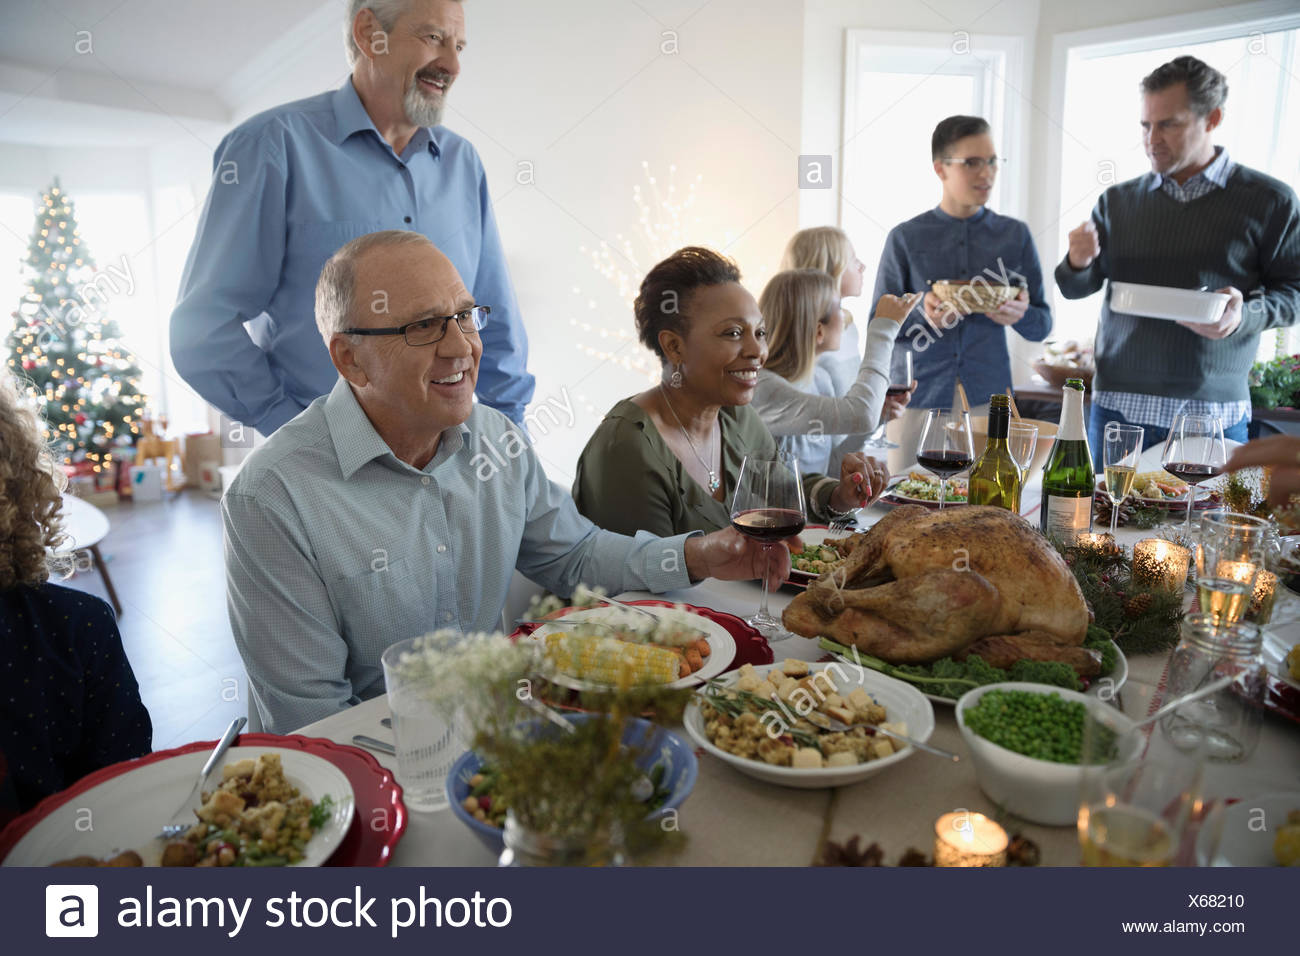 Family enjoying turkey Christmas dinner at table - Stock Image